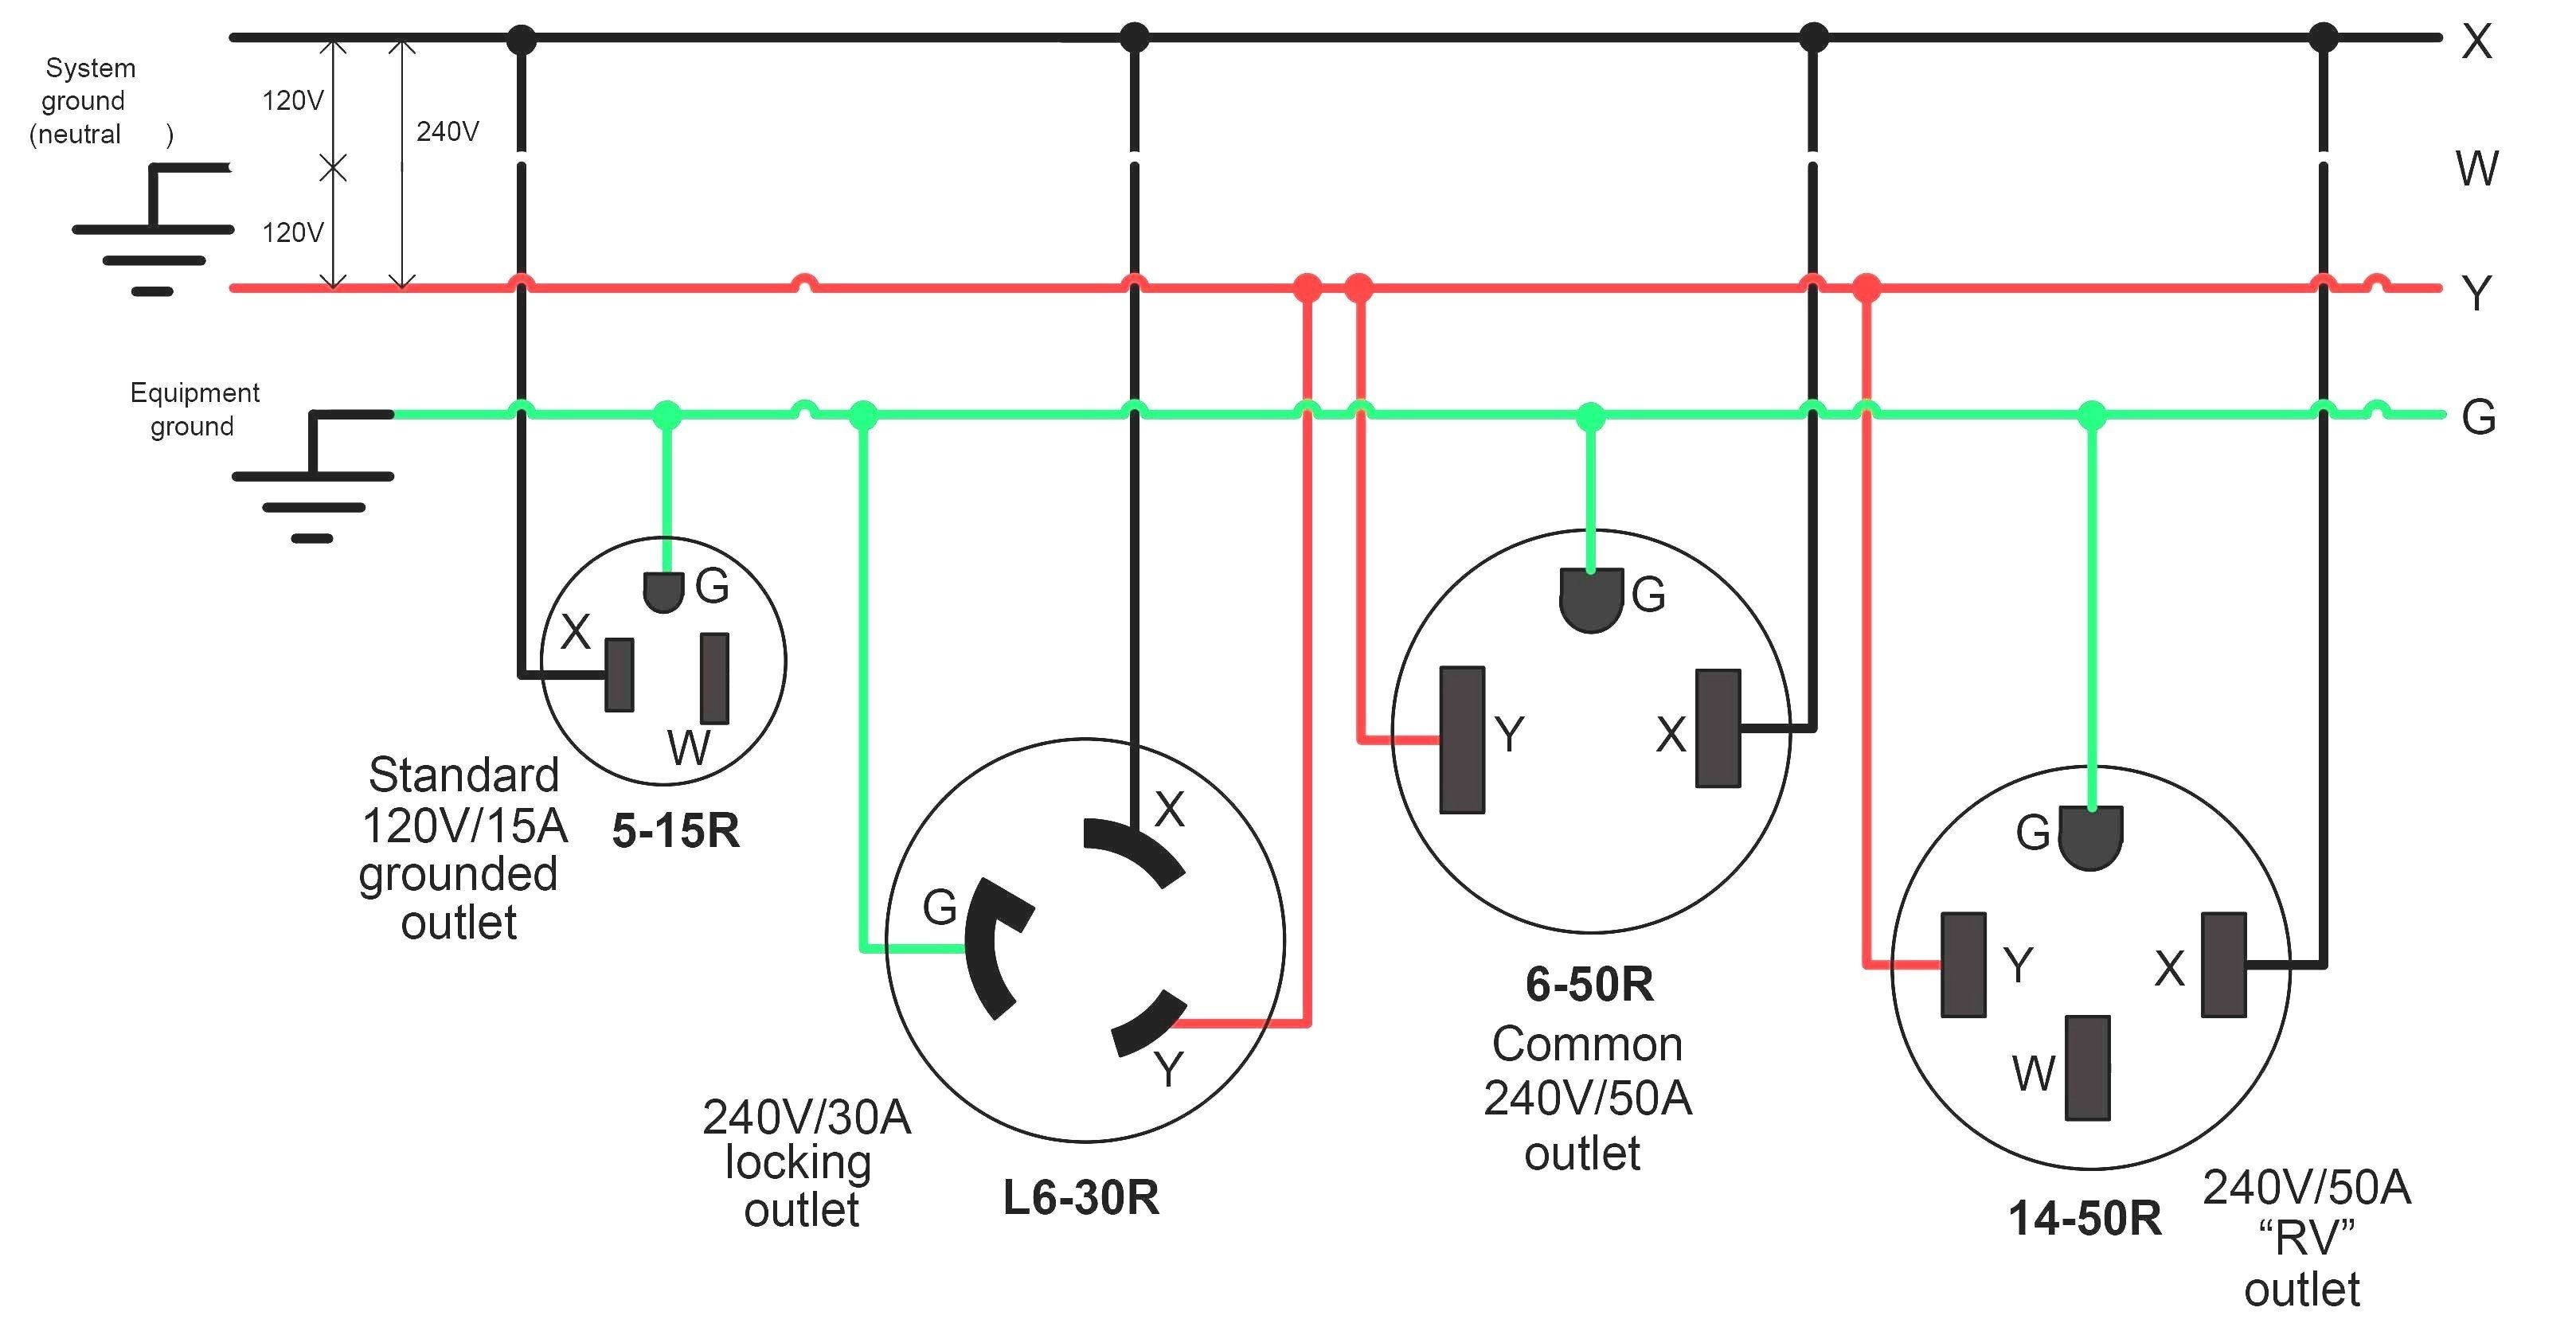 Receptacle Schematic Wiring Color | Wiring Diagram on rv power diagram, rv trailer wiring, rv replacement plug, rv plug cover, rv wiring diagrams online, rv plug wire, rv plug timer, rv power plug, 7 rv plug diagram, nema plug diagram, rv wiring harness, rv receptacle wiring, rv plugs and outlets,